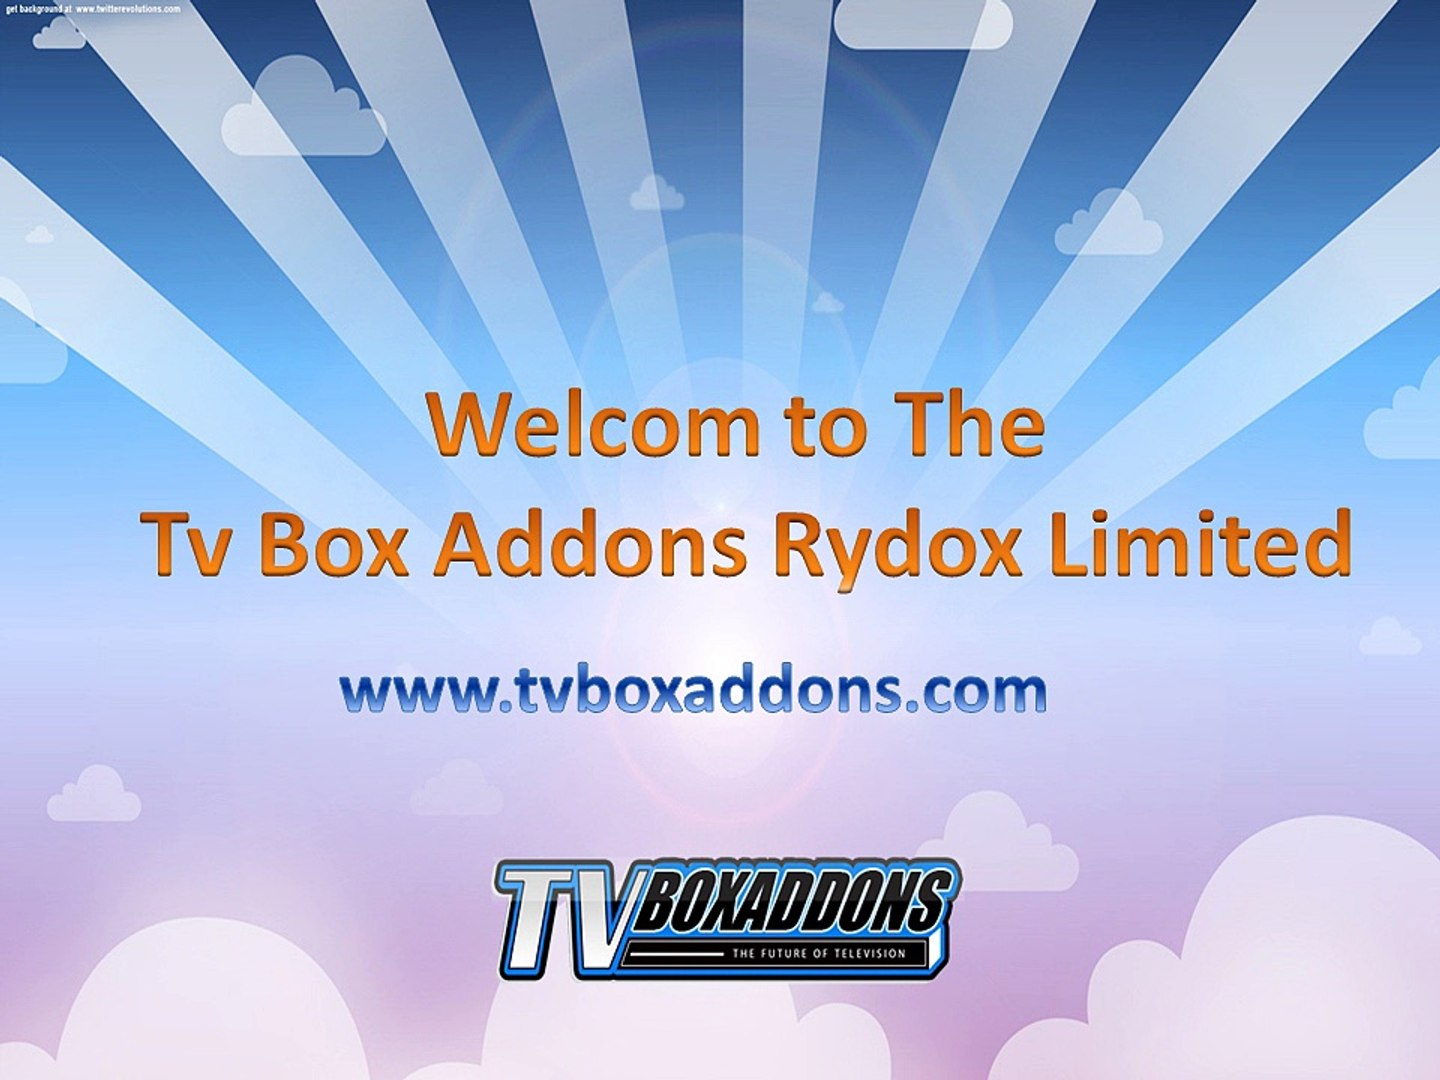 Movies addons is the best for watching movies and Tv Show